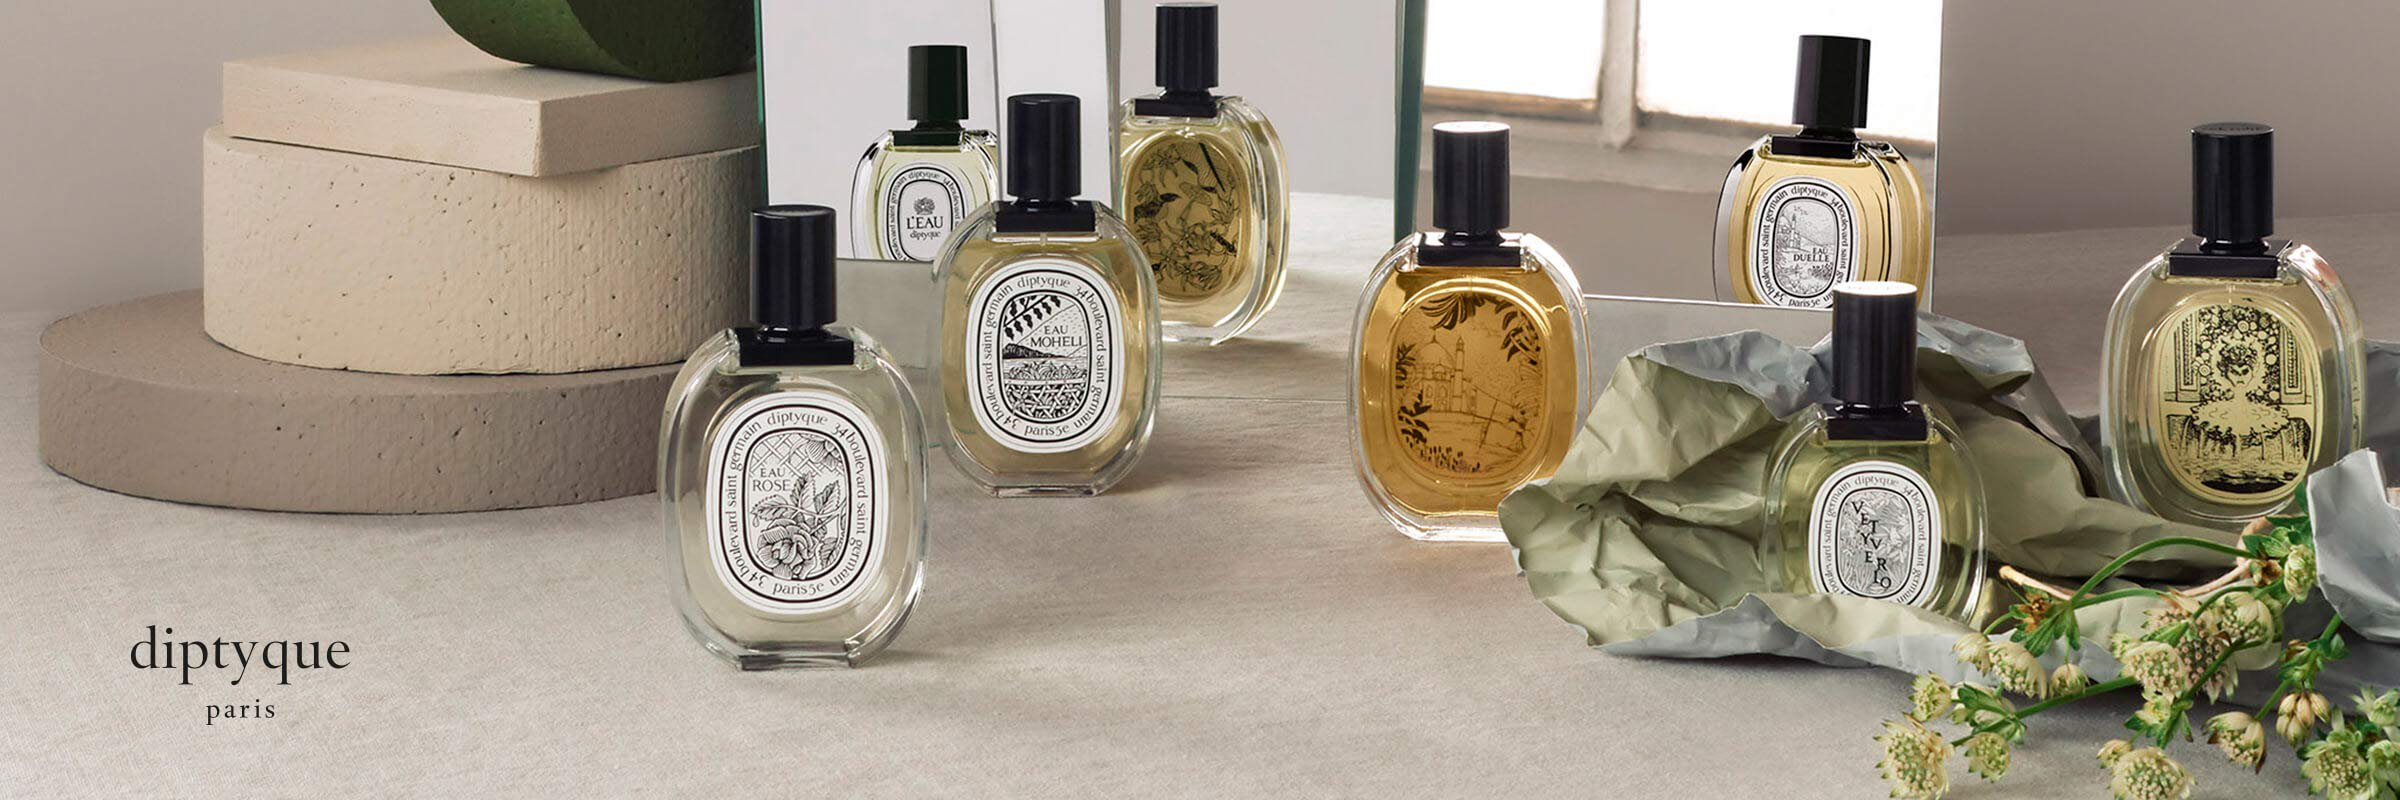 Diptyque - New Arrivals